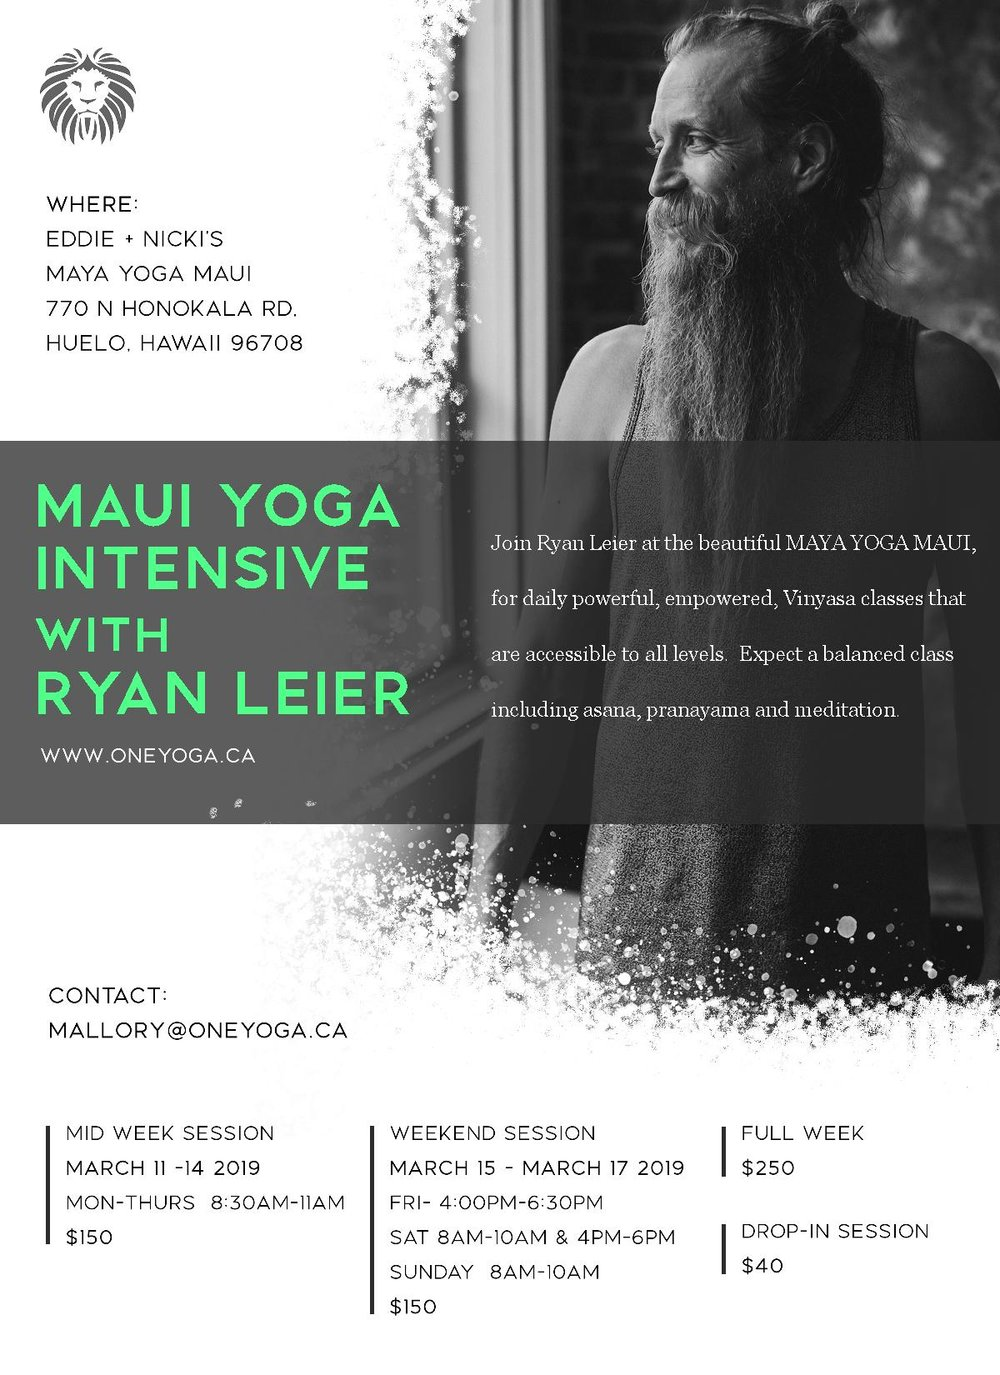 Join Ryan Leier at the legendary Maya Yoga Maui, for a powerful and empowered Vinyasa Yoga Intensive that is accessible to all levels of yoga. Expect a balance of asana, pranayama and meditation. Ryan has been studying + practicing at Maya Yoga for over 12+ years and is looking forward to sharing time in this healing studio with you all.